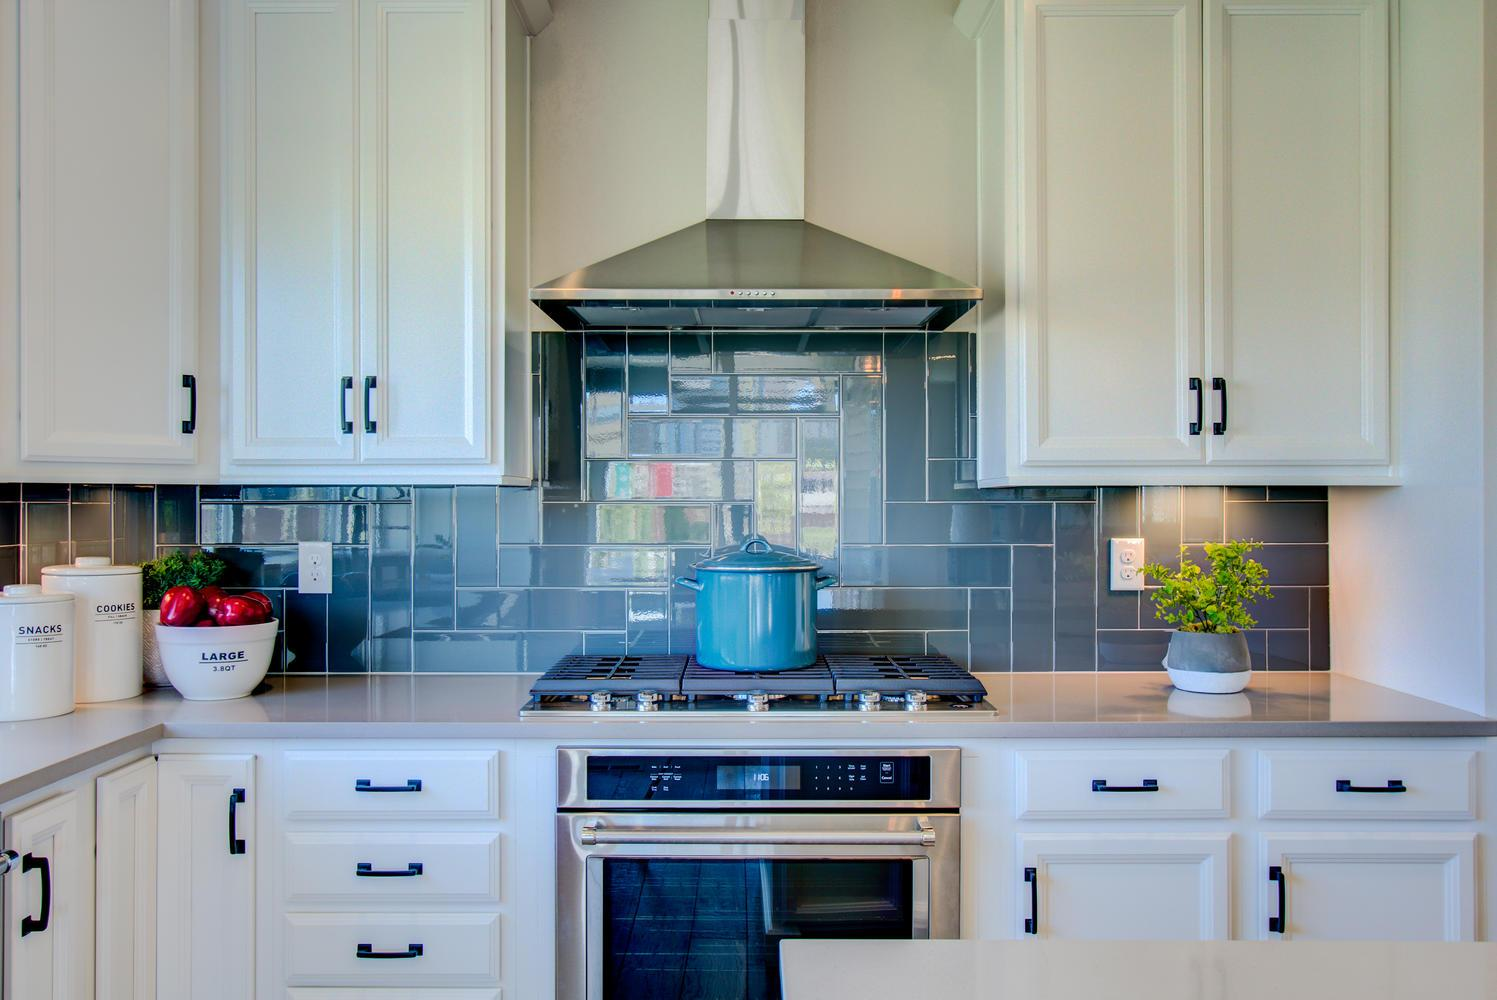 Kitchen-in-Residence 4024-at-Ensemble Collection at Candelas-in-Arvada